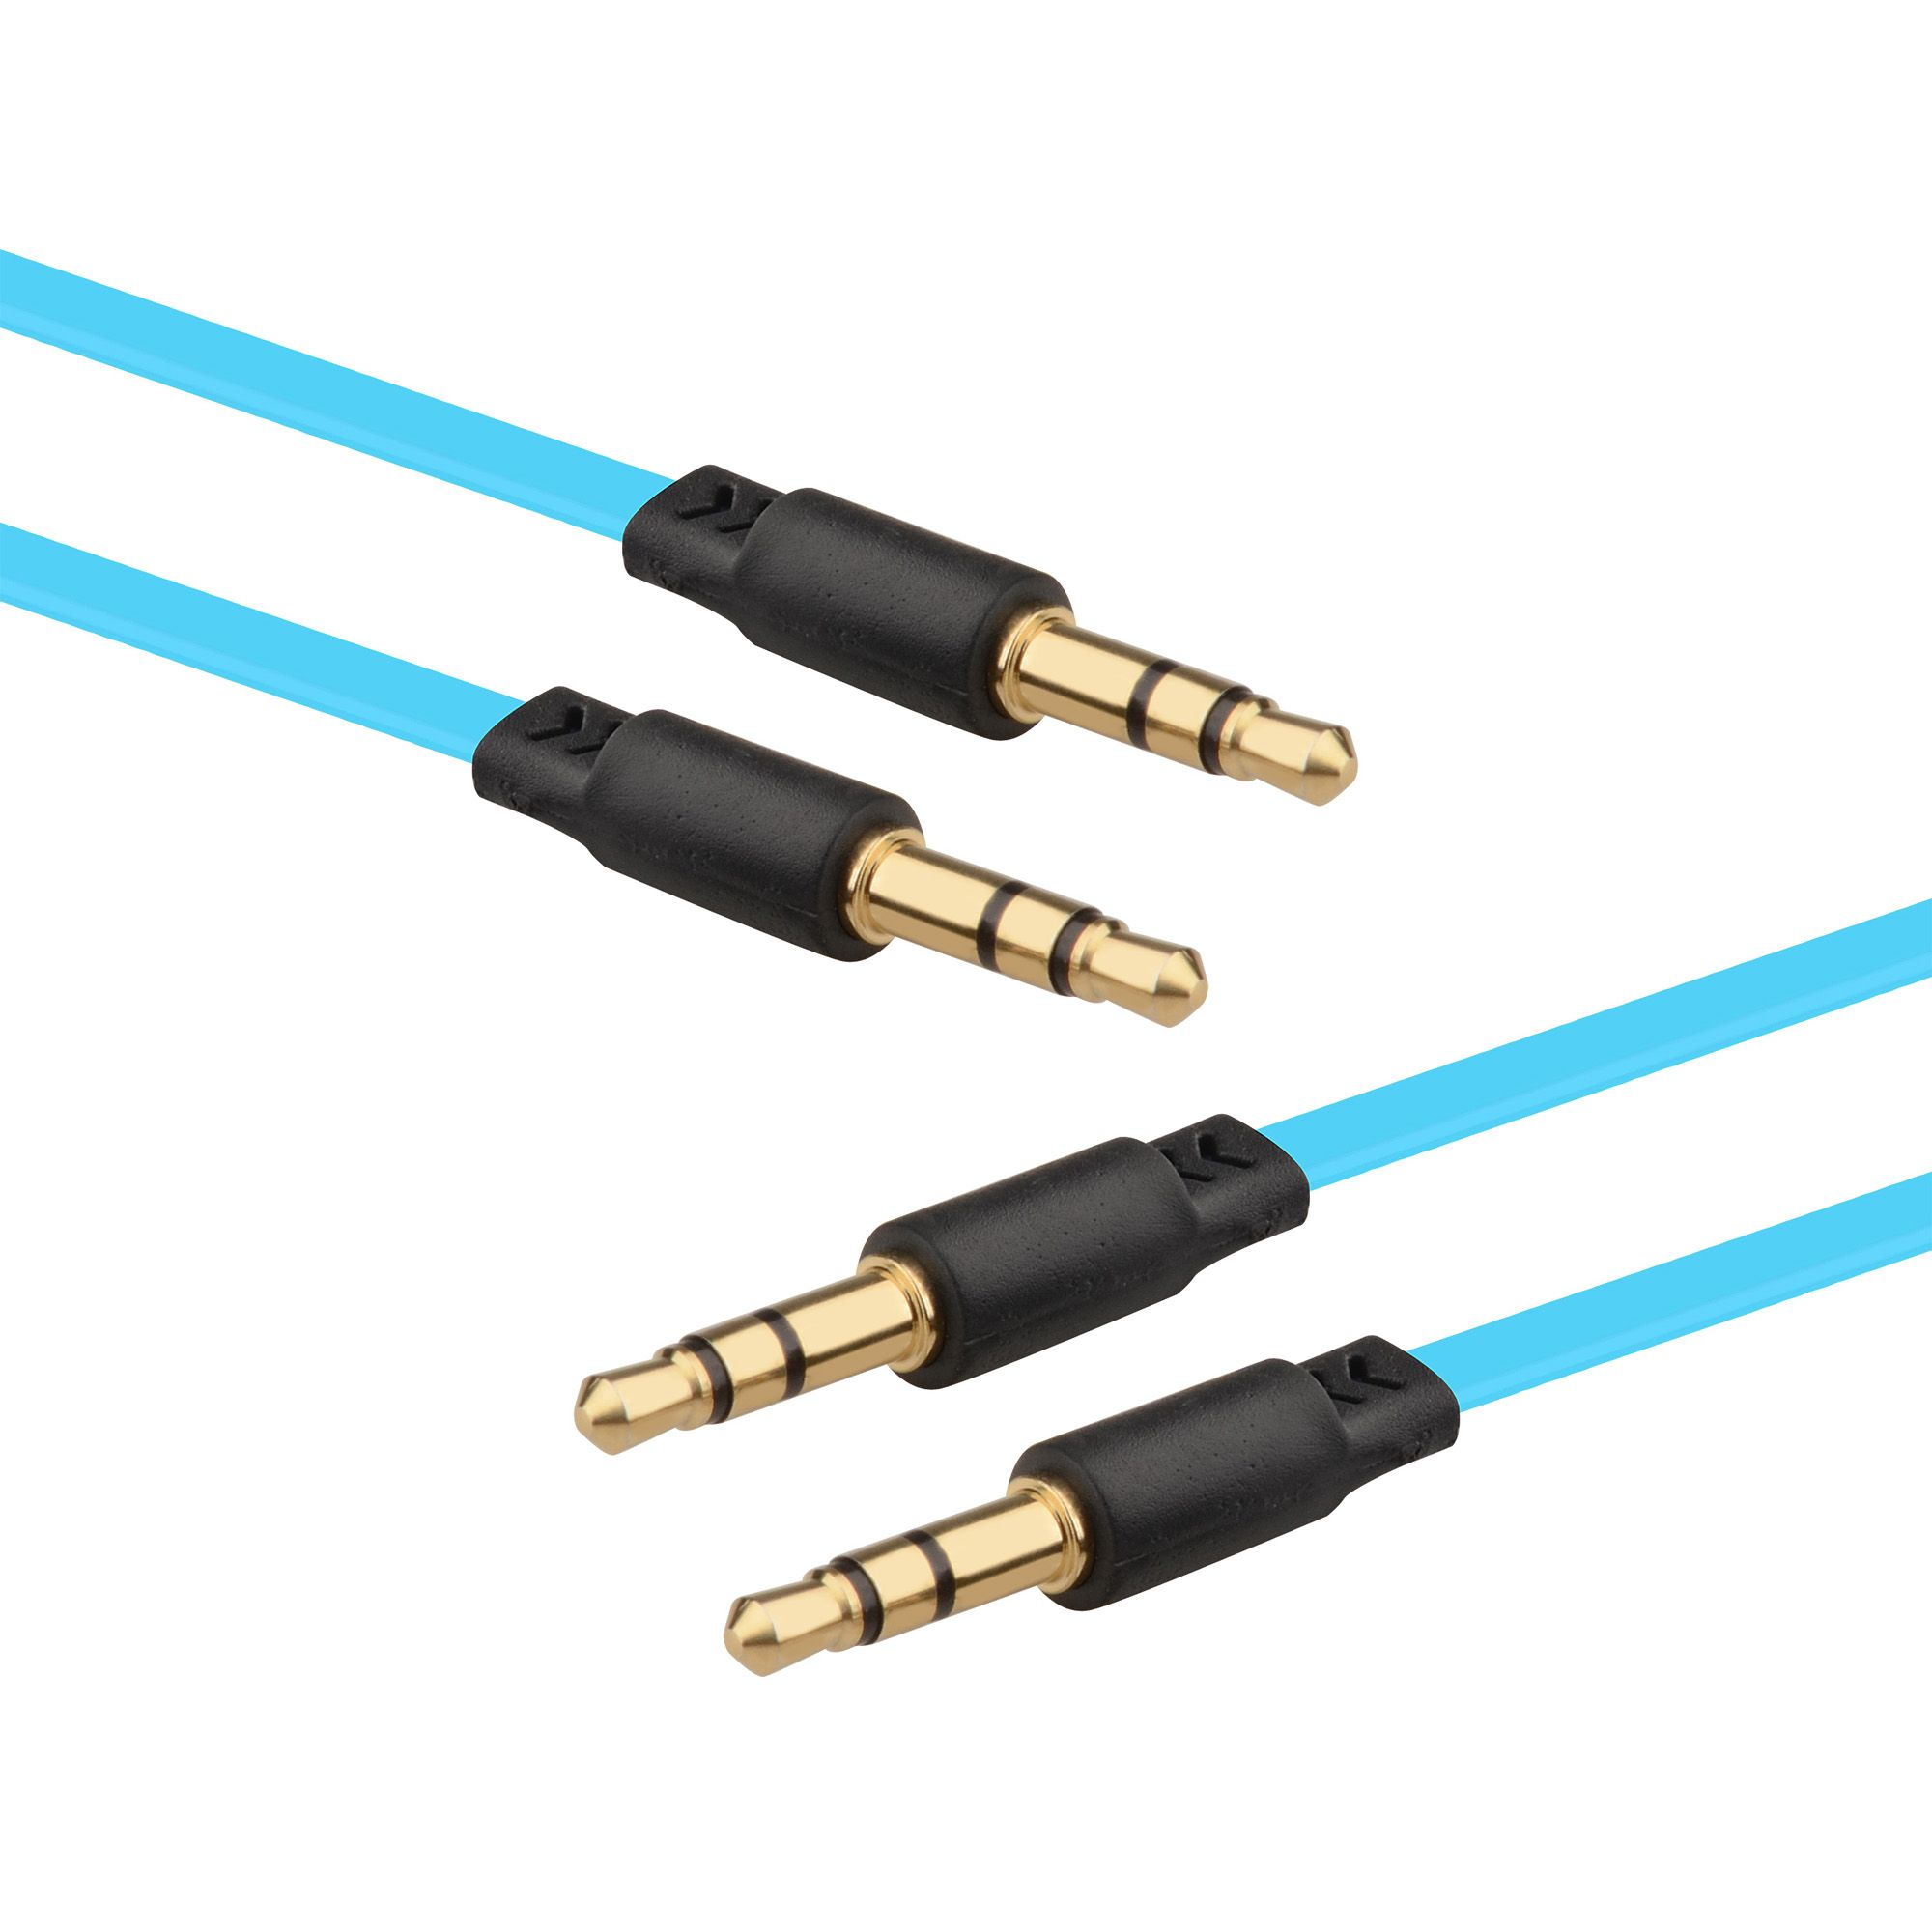 2 Pack 3.5mm Audio Cable by Insten 3' 3.5mm Male to Male Audio Cable for Soundbar Smartphone Cell phone Mobile iPhone iPod iPad MP3 MP4 Tablet PC Laptop Music Out to Speaker Car Aux Audio System